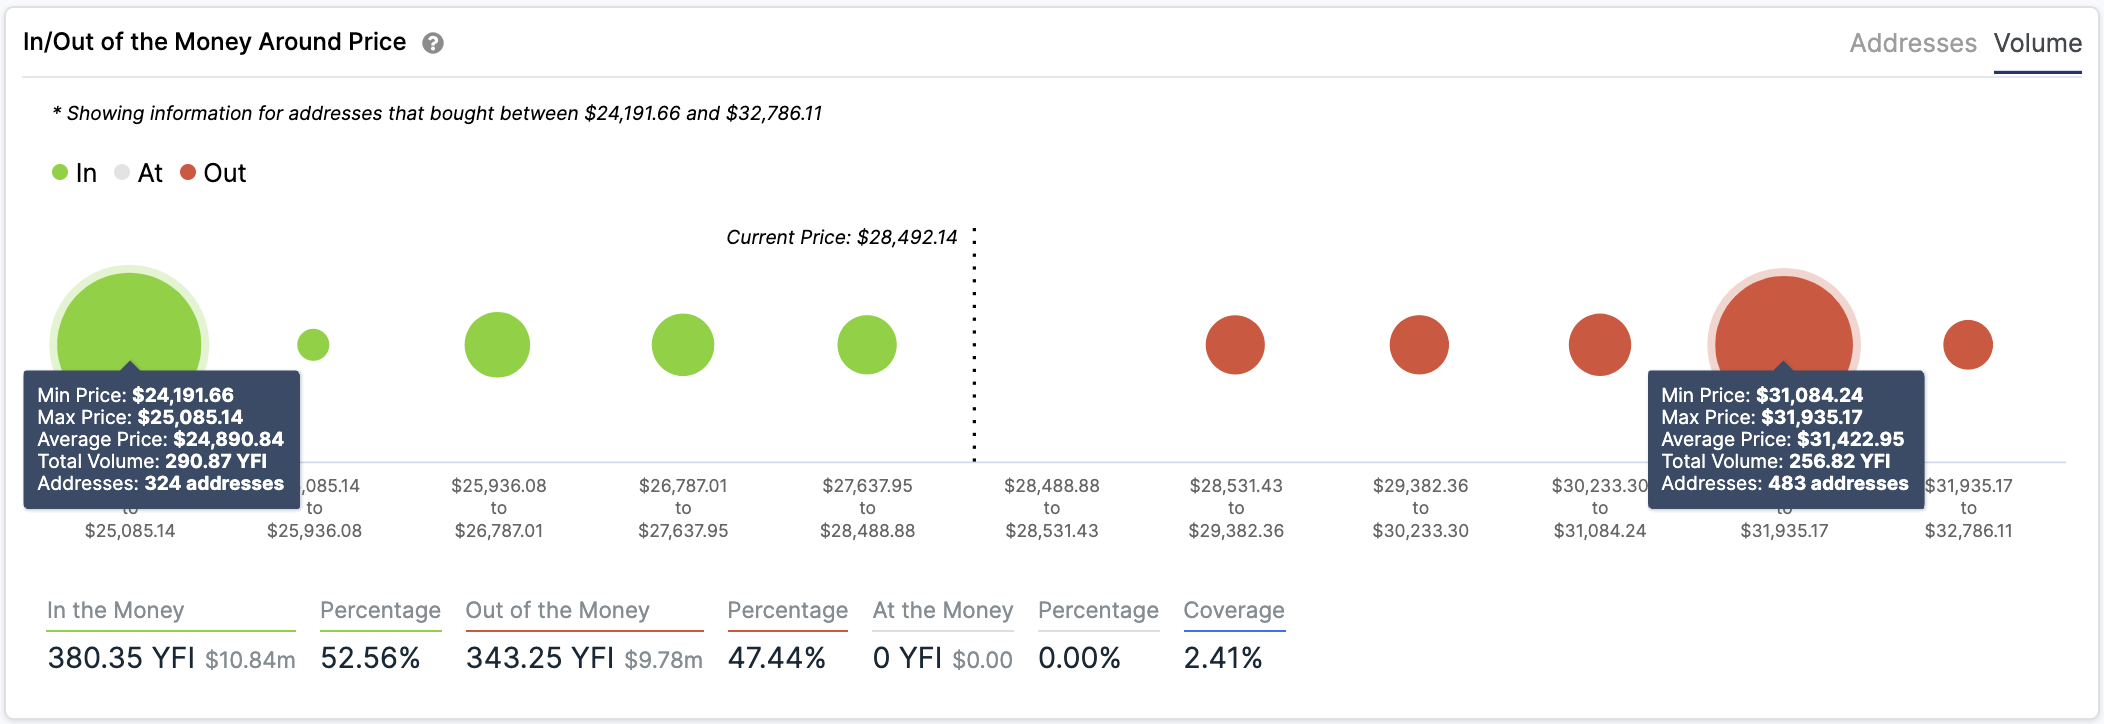 YFI's In/Out of the Money Around Price by IntoTheBlock